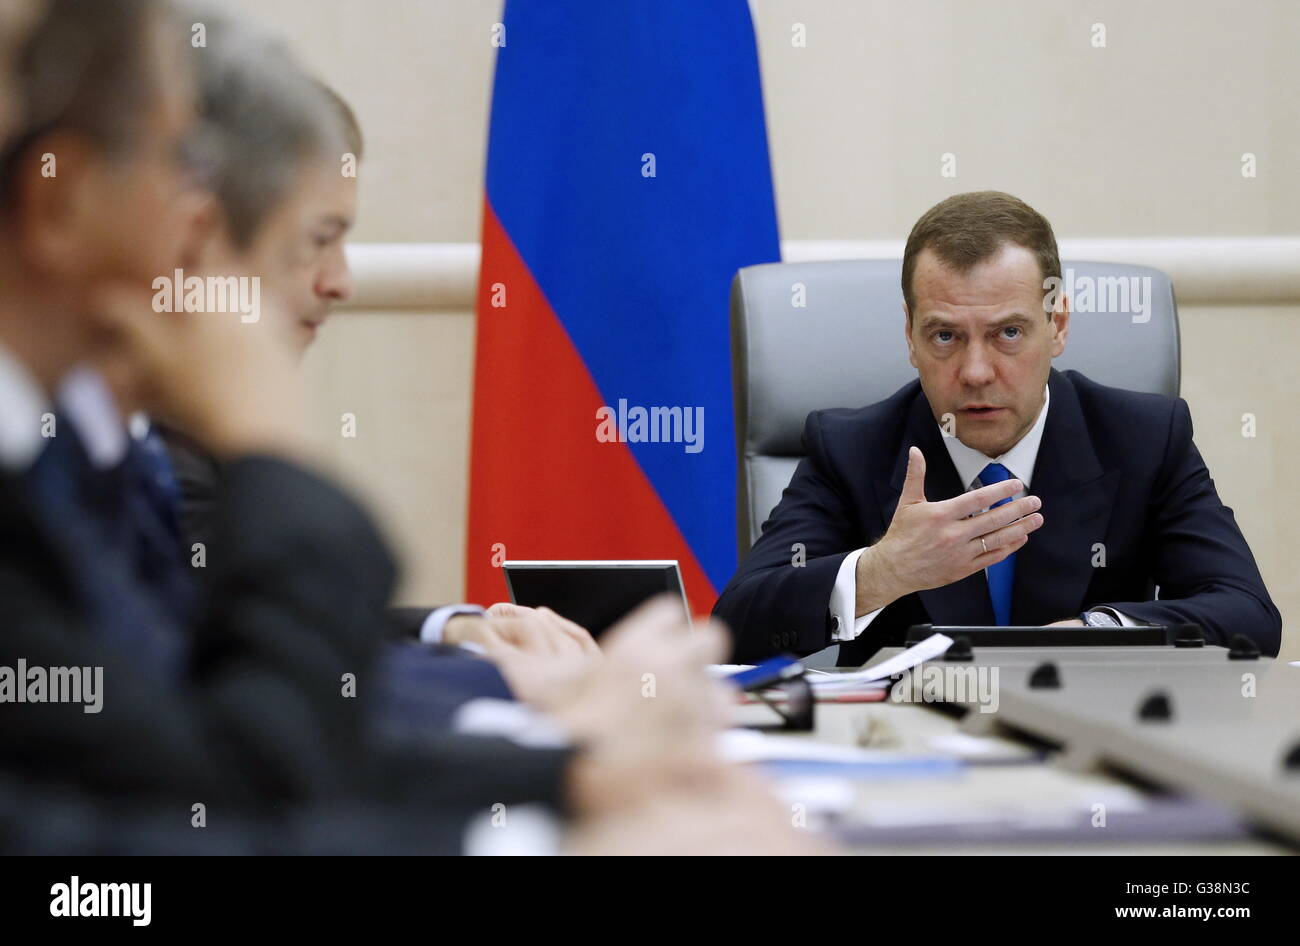 Moscow, Russia. 9th June, 2016. Russia's prime minister Dmitry Medvedev (R) at a meeting of Russian government officials Stock Photo